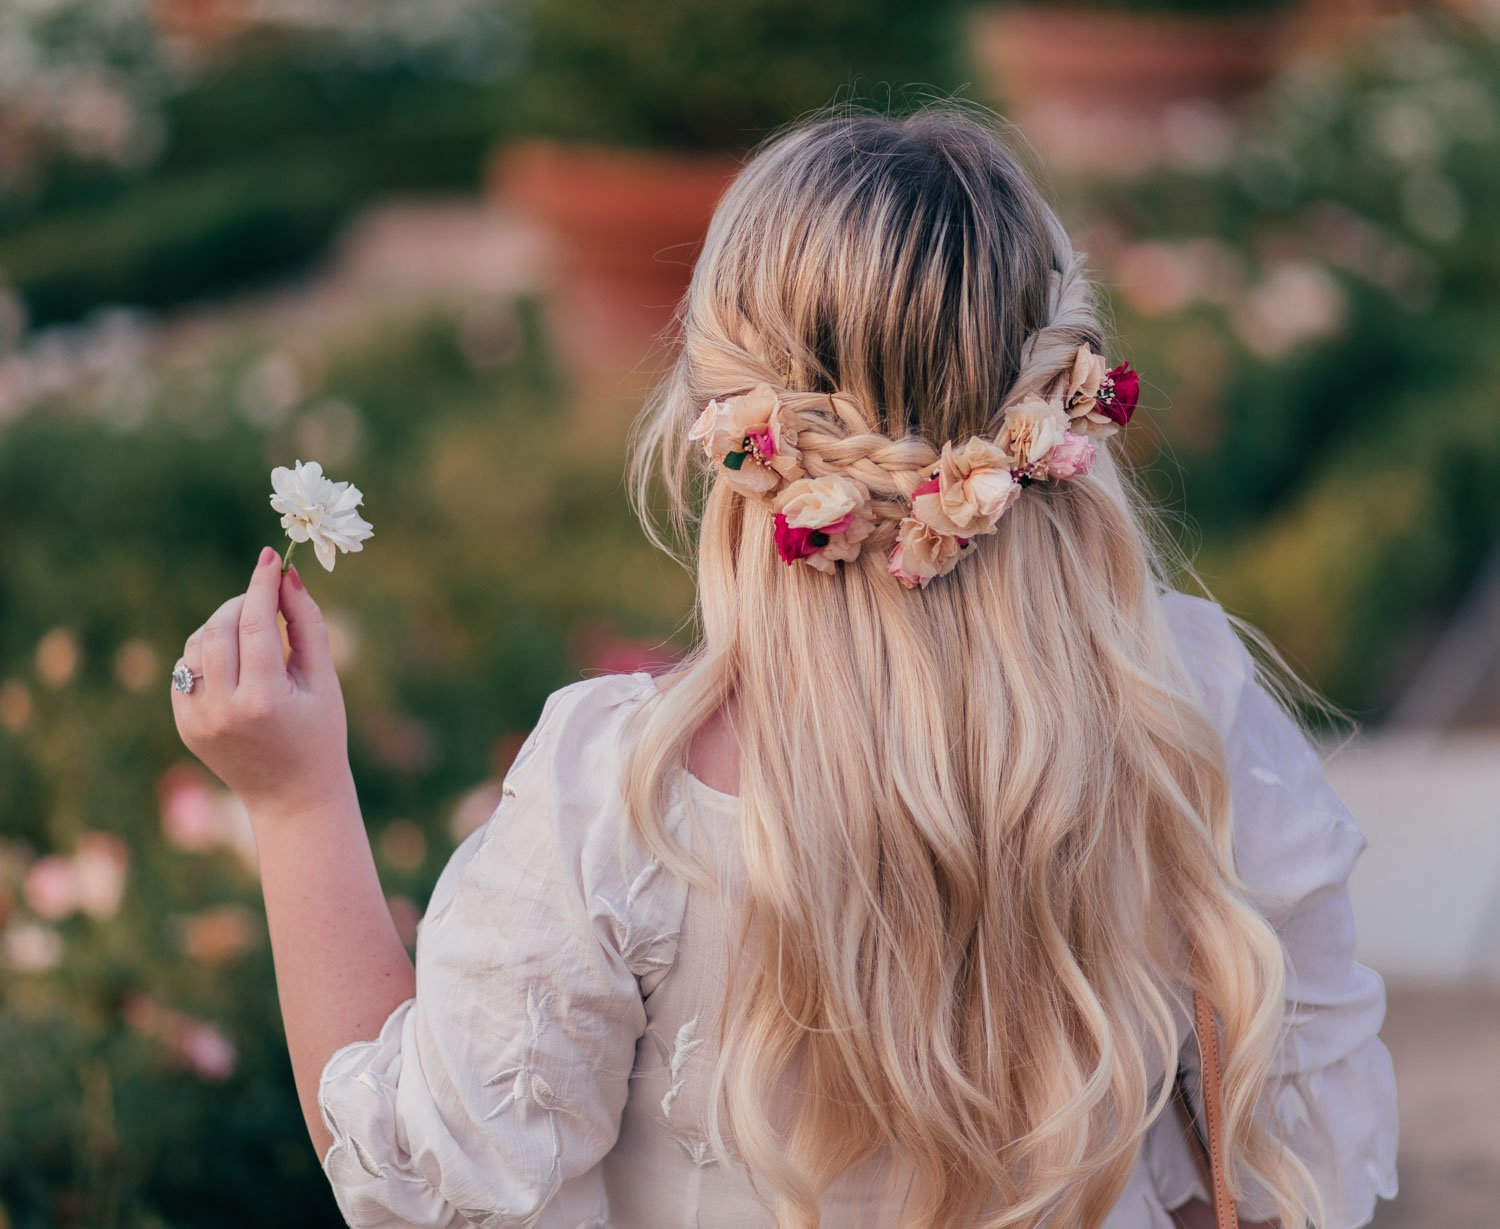 Fashion Blogger Elizabeth Hugen from Lizzie in Lace shares a feminine floral braided crown hairstyle